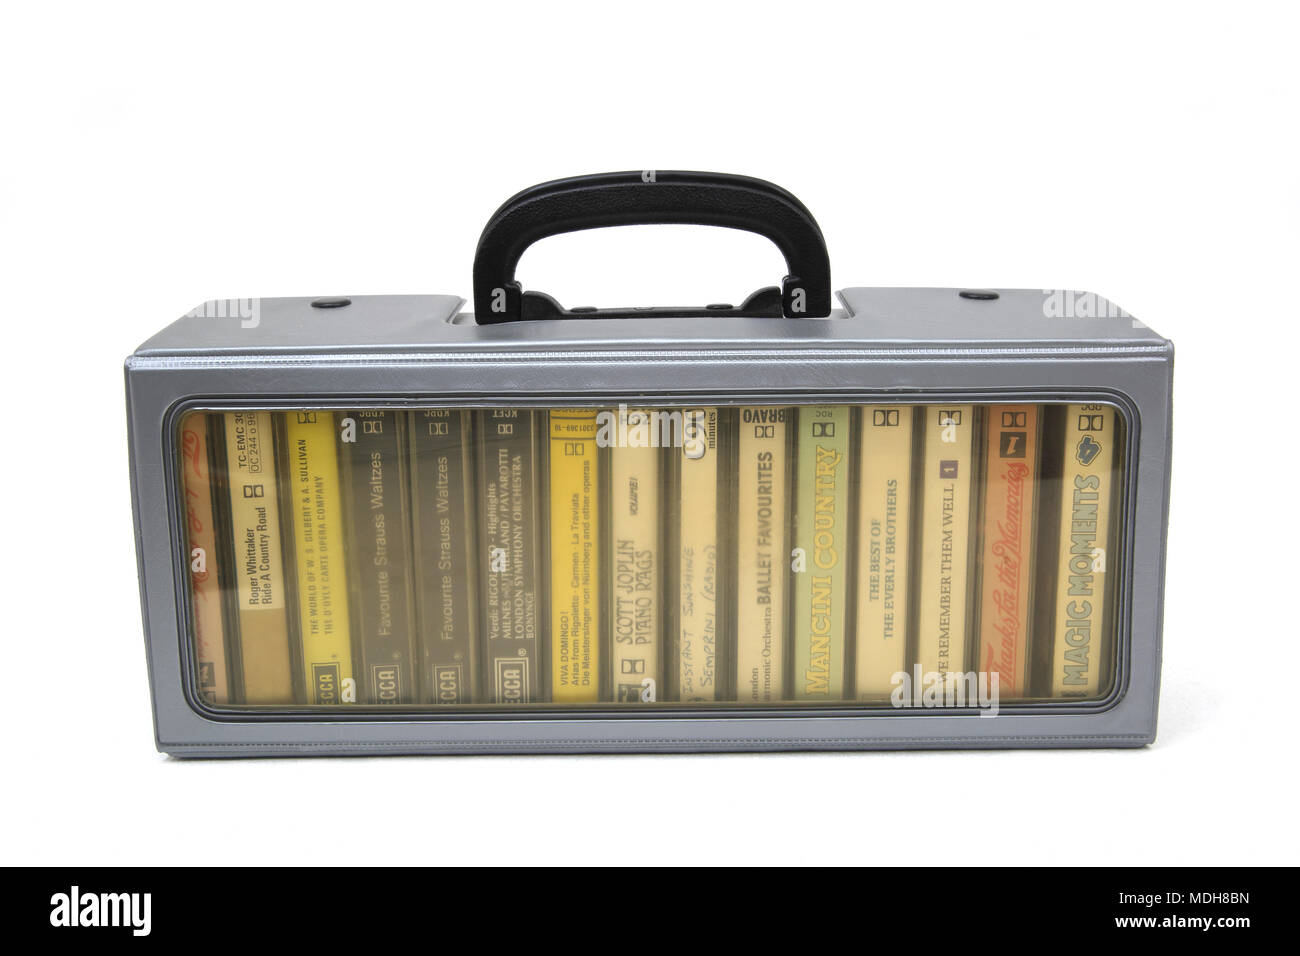 Cassette Carry Case - Stock Image